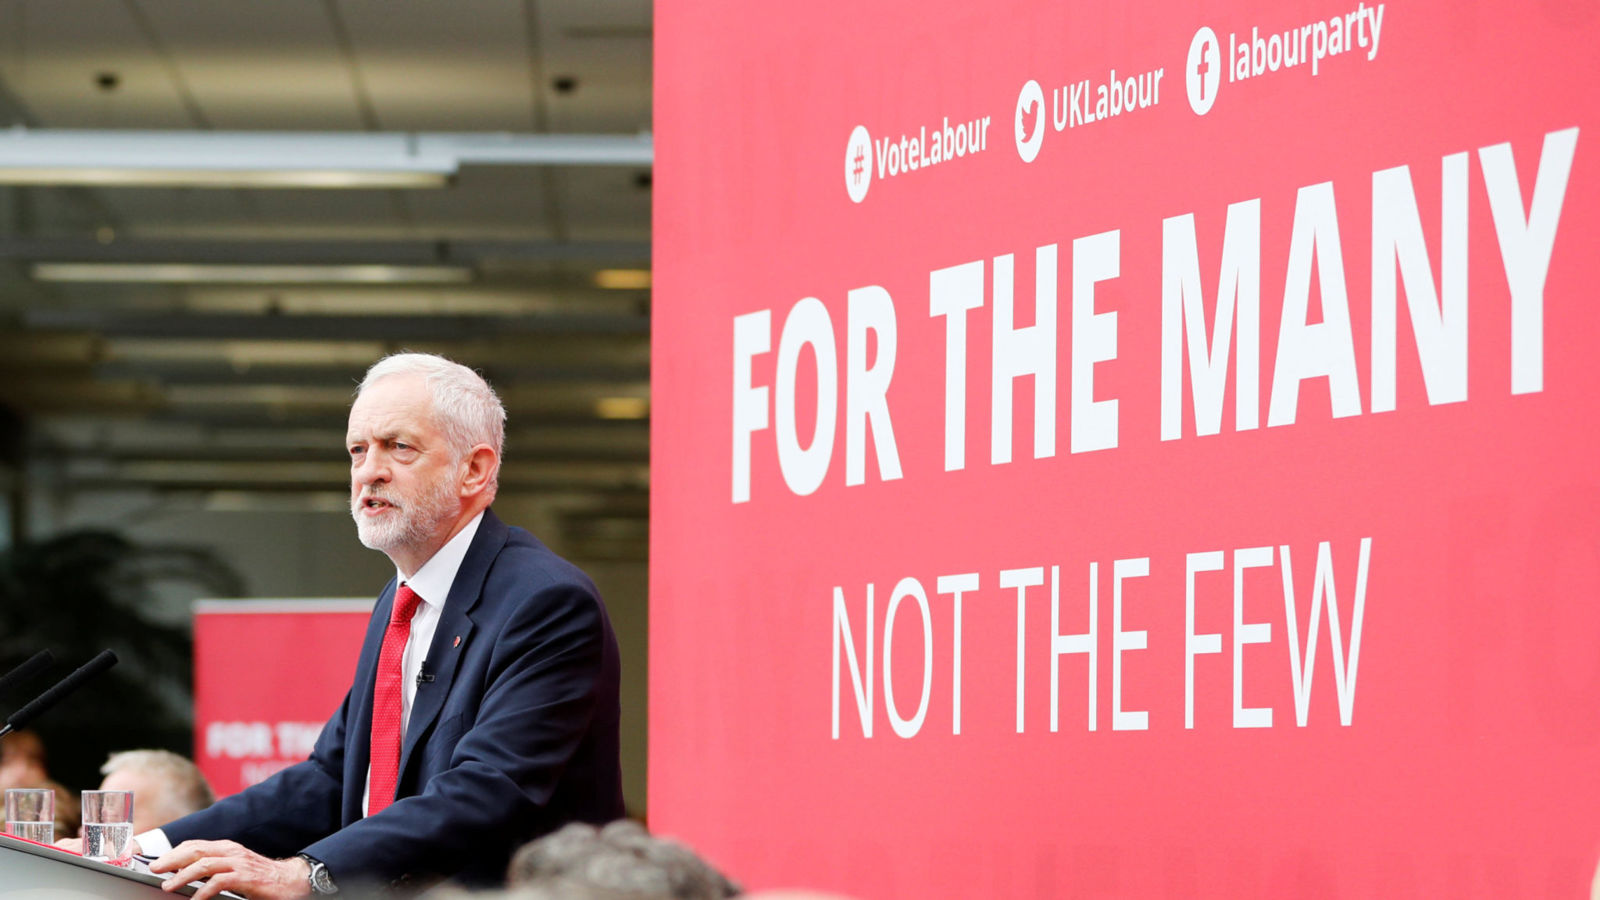 Jeremy Corbyn, the leader of Britain's opposition Labour Party, launches the party's election manifesto at Bradford University, May 16, 2017. REUTERS/Darren Staples